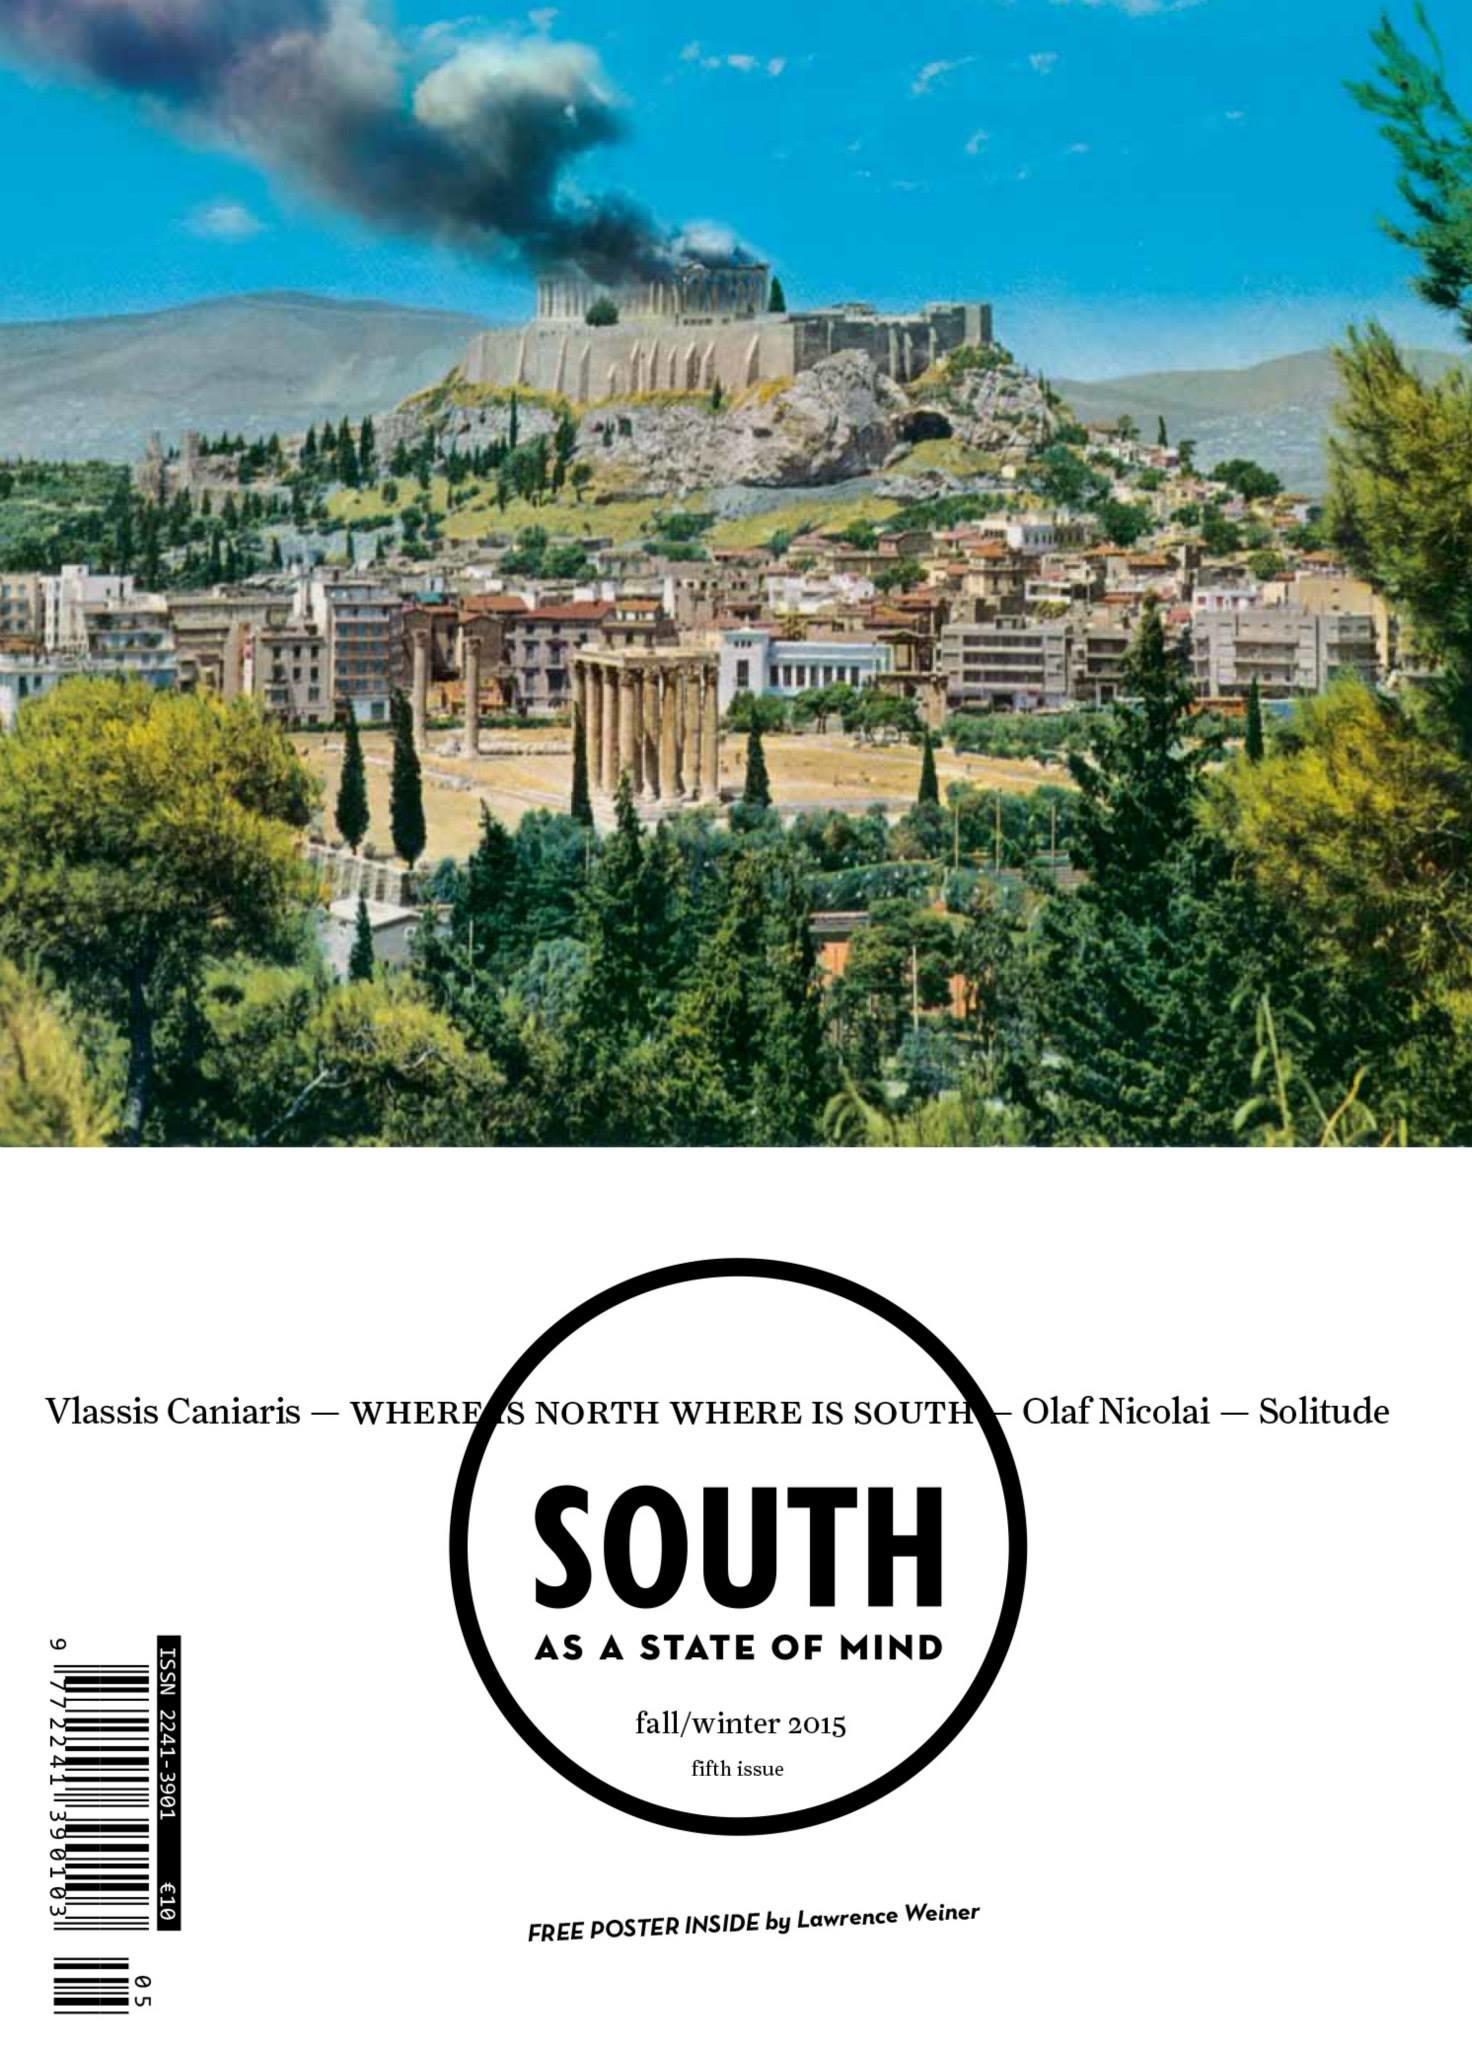 South as a state of mind-issue-5